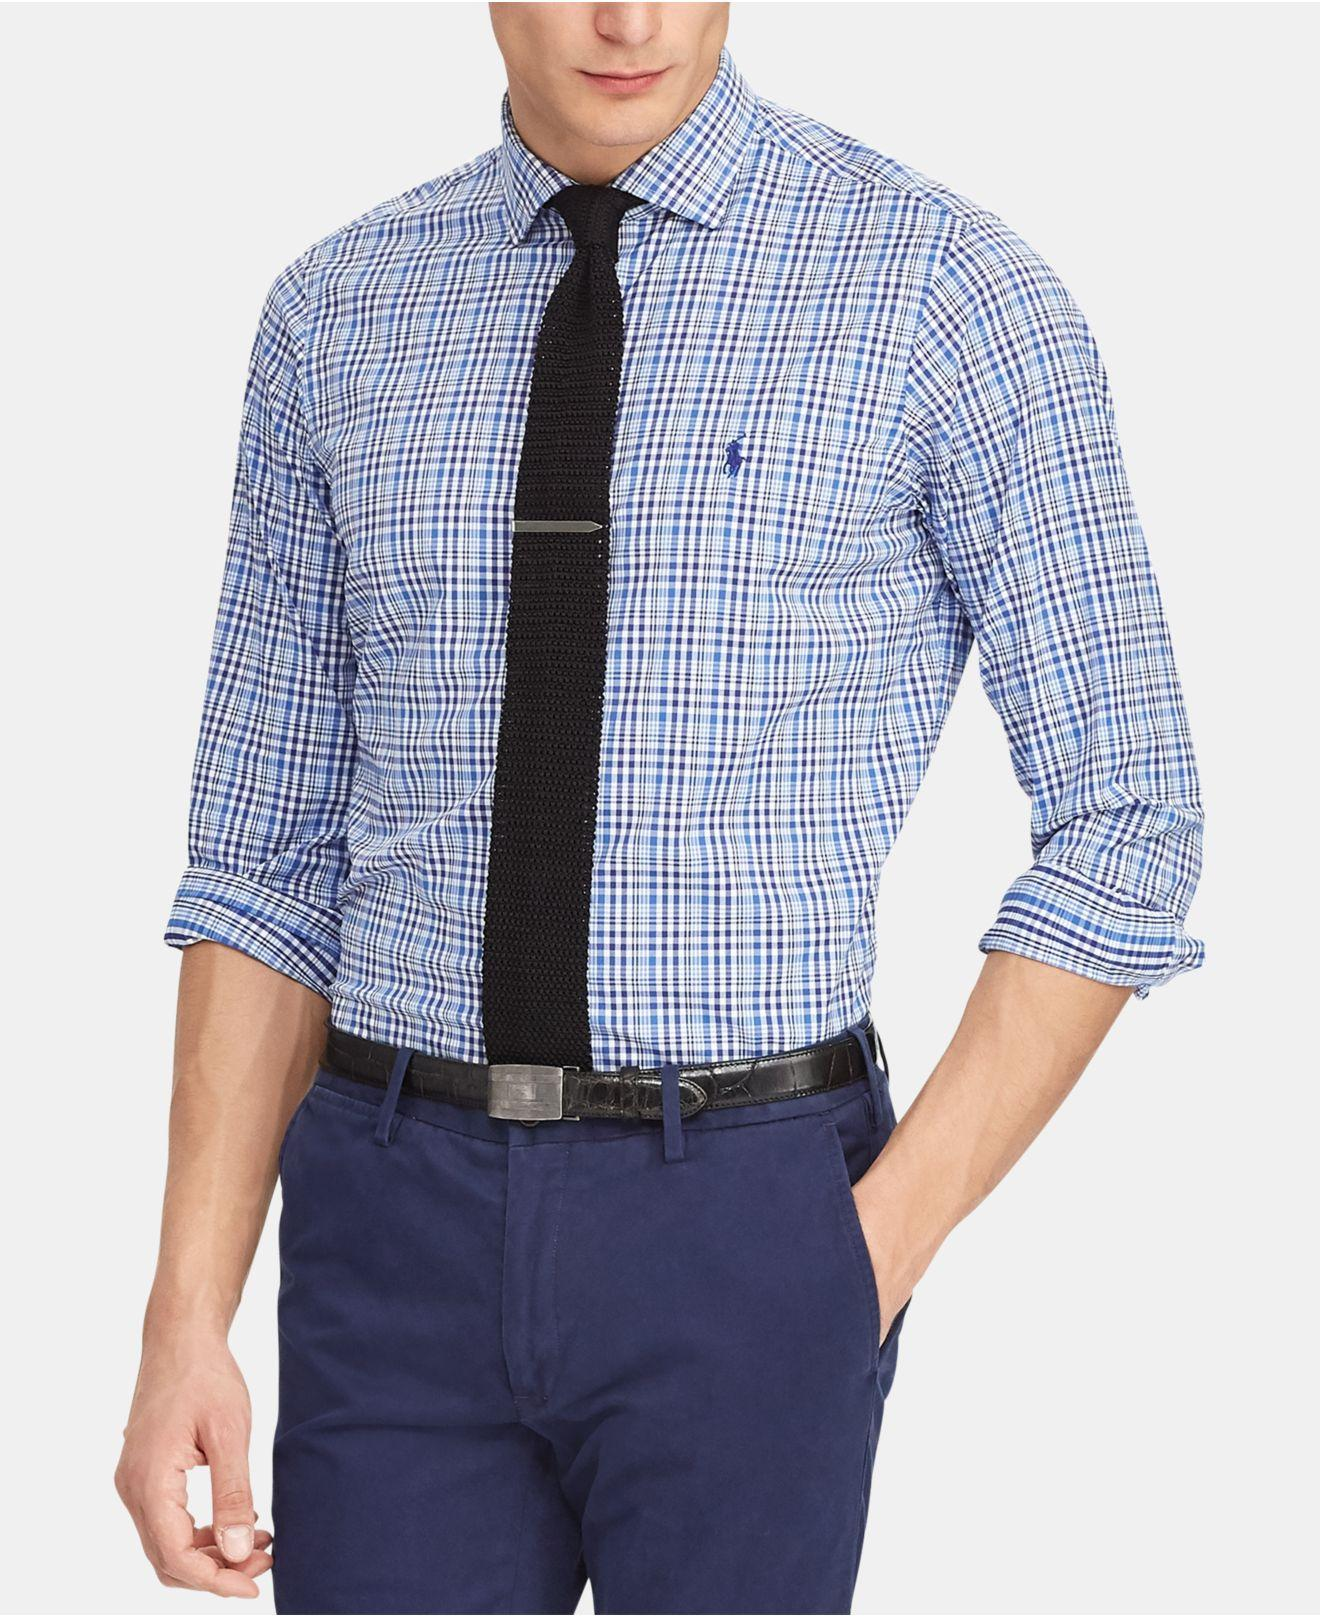 da2e2596fabe Lyst - Polo Ralph Lauren Classic-fit Performance Shirt in Blue for Men